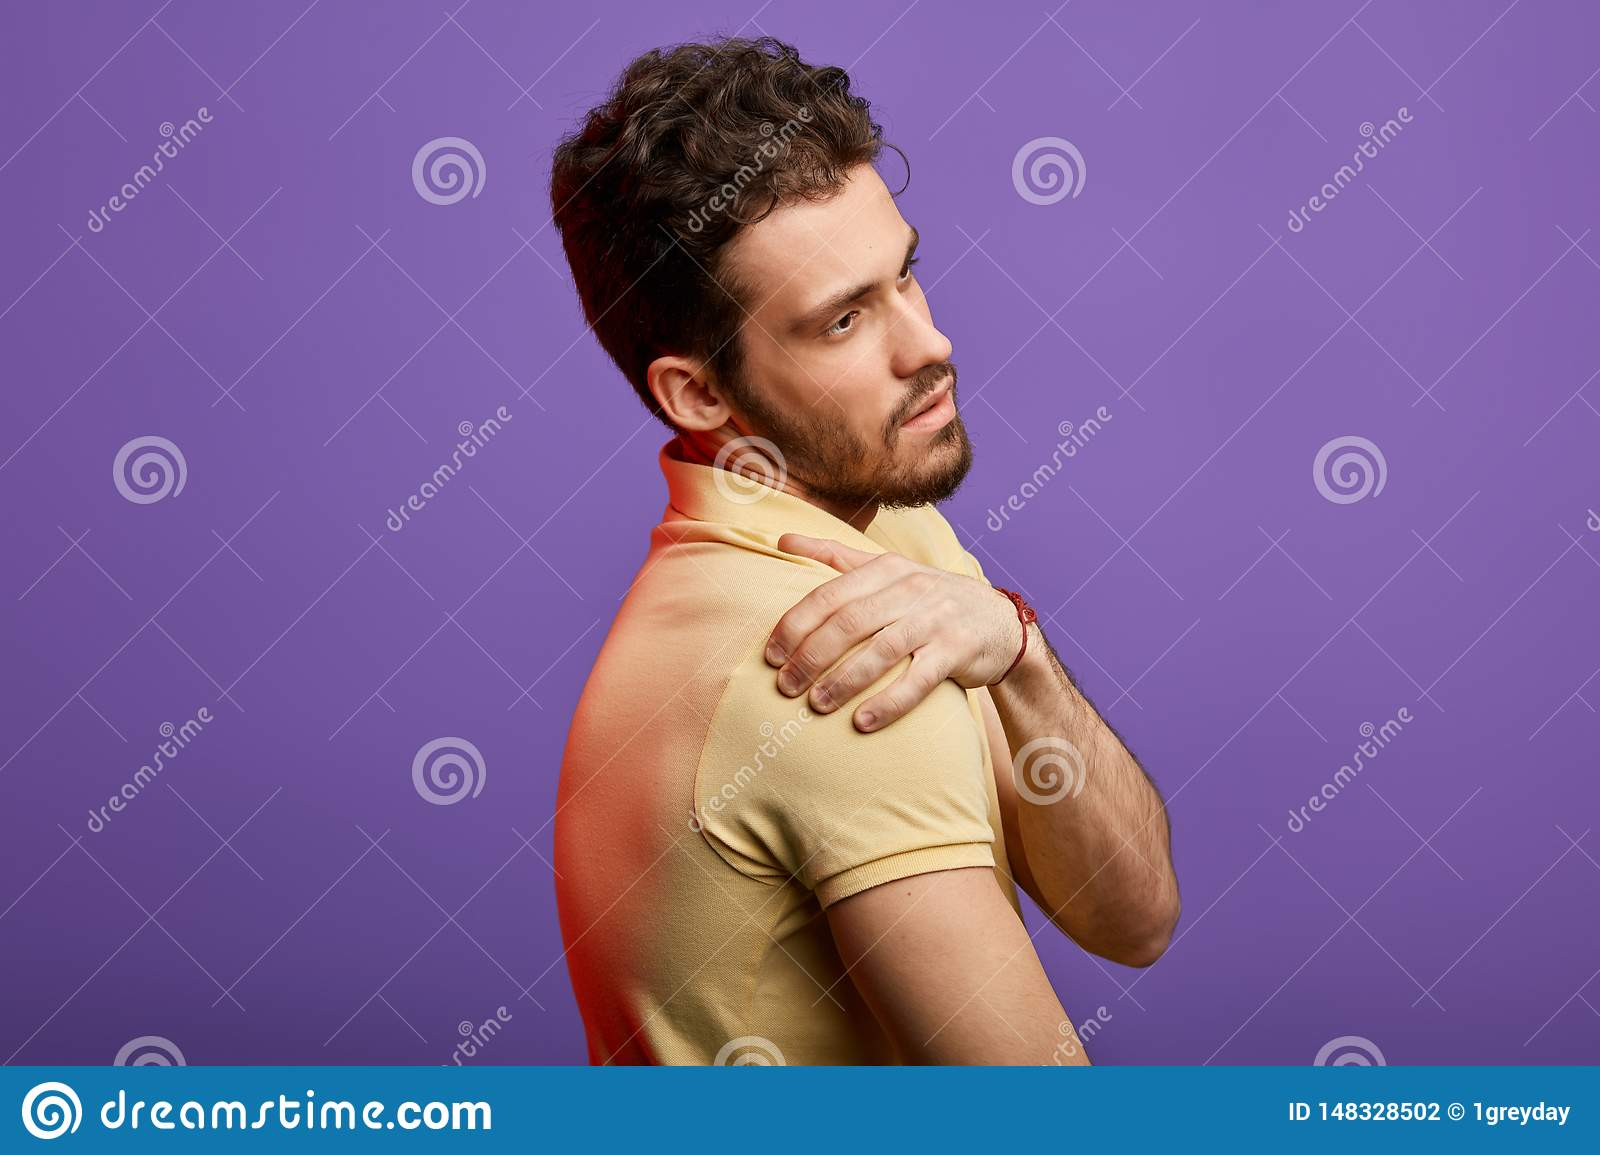 Attractive man suffering from pain in his shoulder